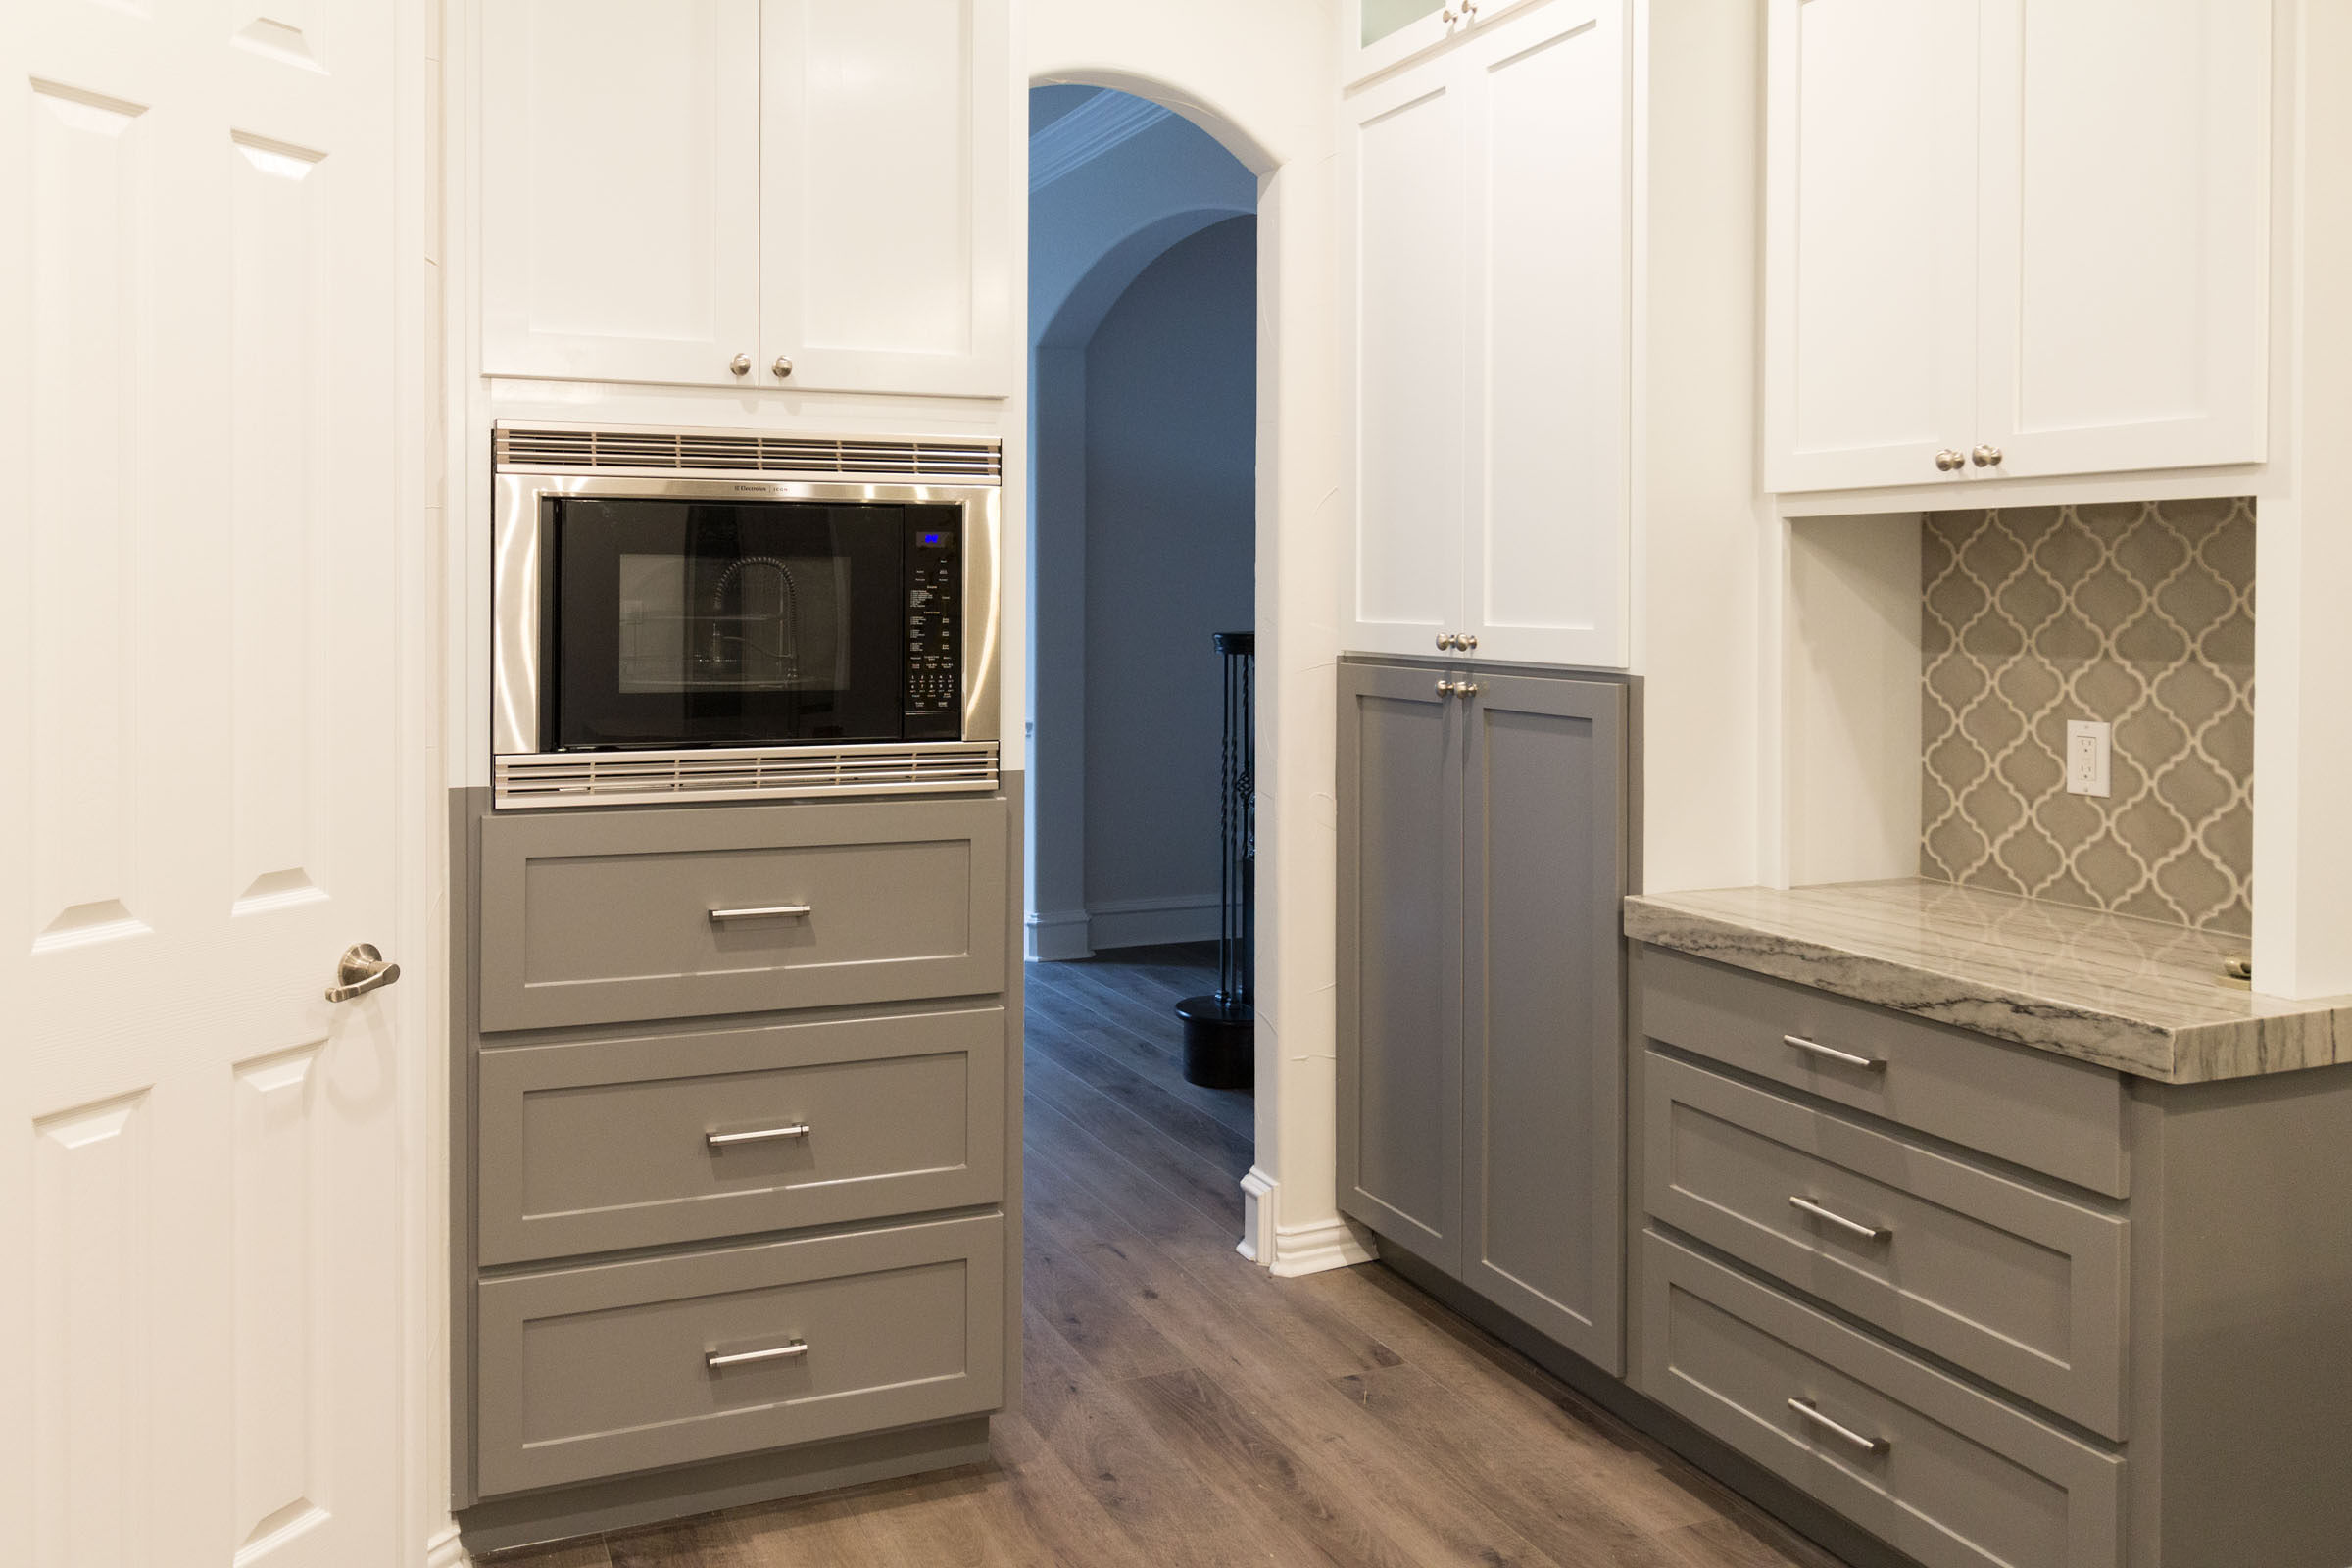 Contemporary kitchen remodel, white and grey, clean and bright, pinterest inspiration